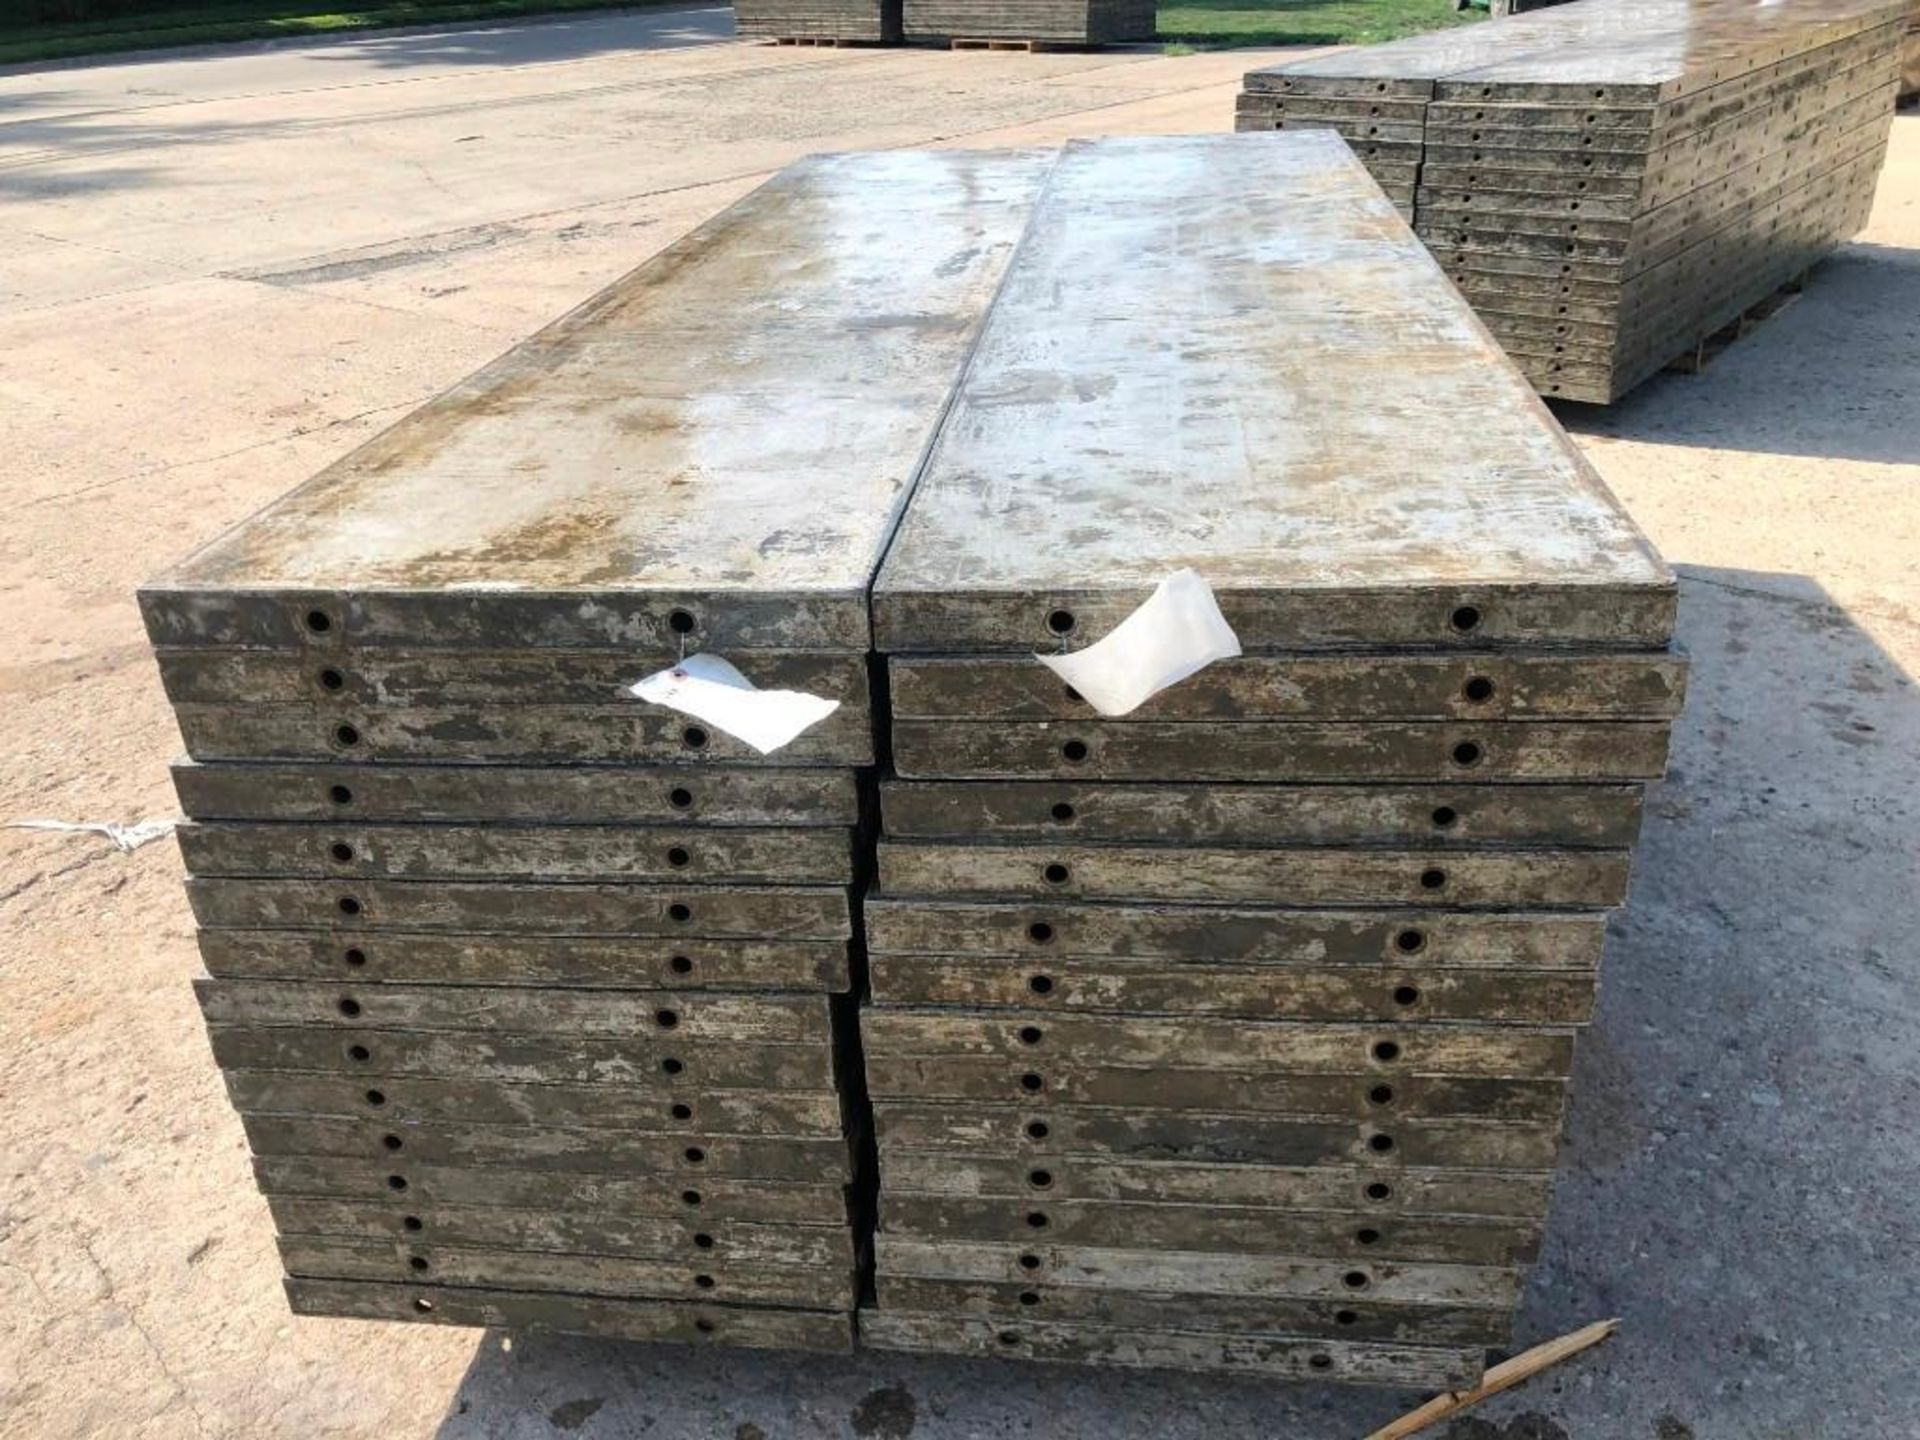 Lot 132 - (30) 2' x 9' Wall-Ties Aluminum Concrete Forms, Laydowns, Smooth 6-12 Hole Pattern. Located at 301 E